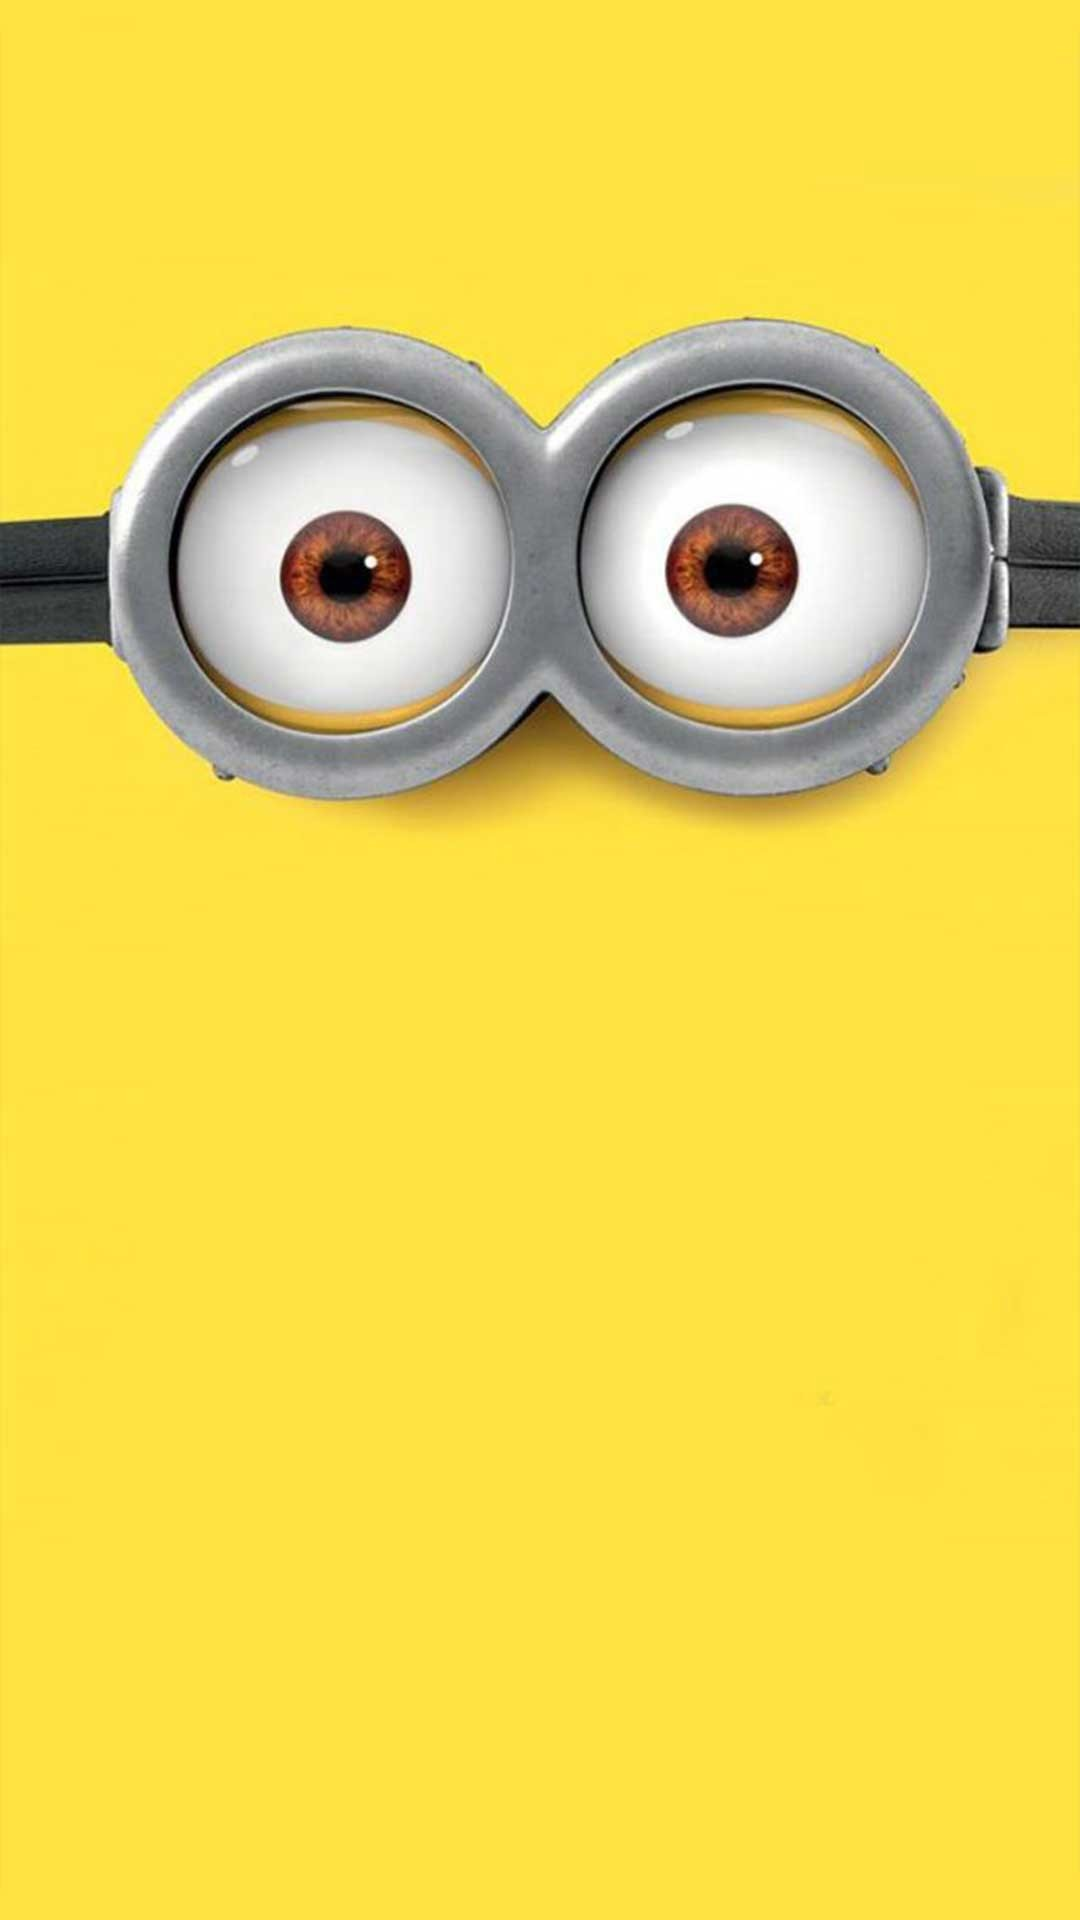 1080x1920 3d Minion Eye Wallpaper HD. funny iphone wallpapers